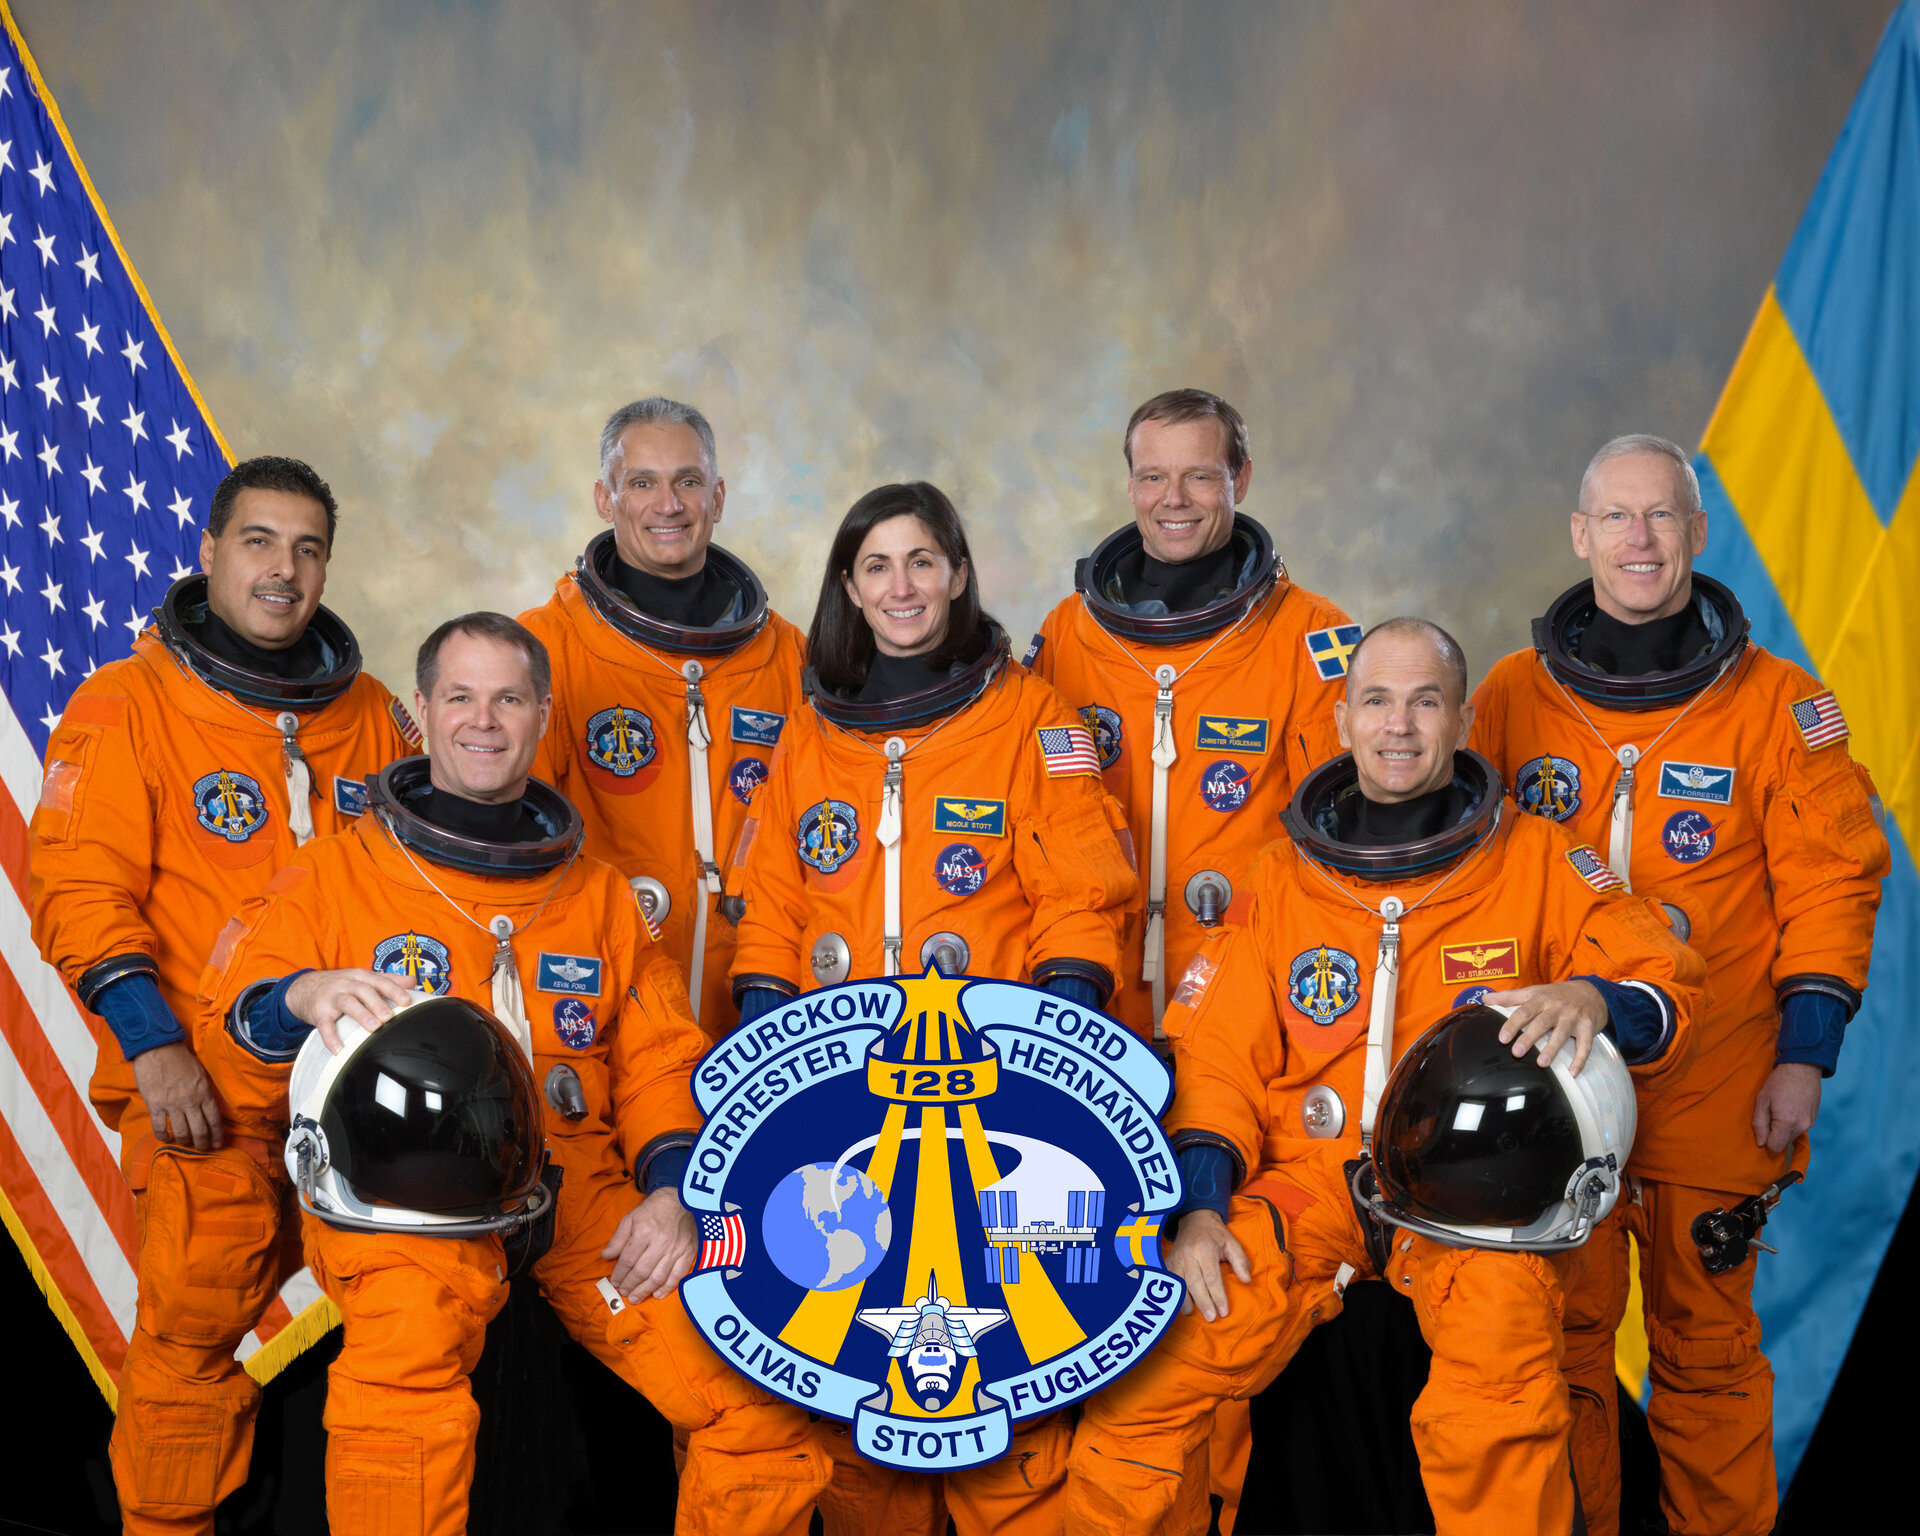 STS-128 crew arrived at the ISS early this morning